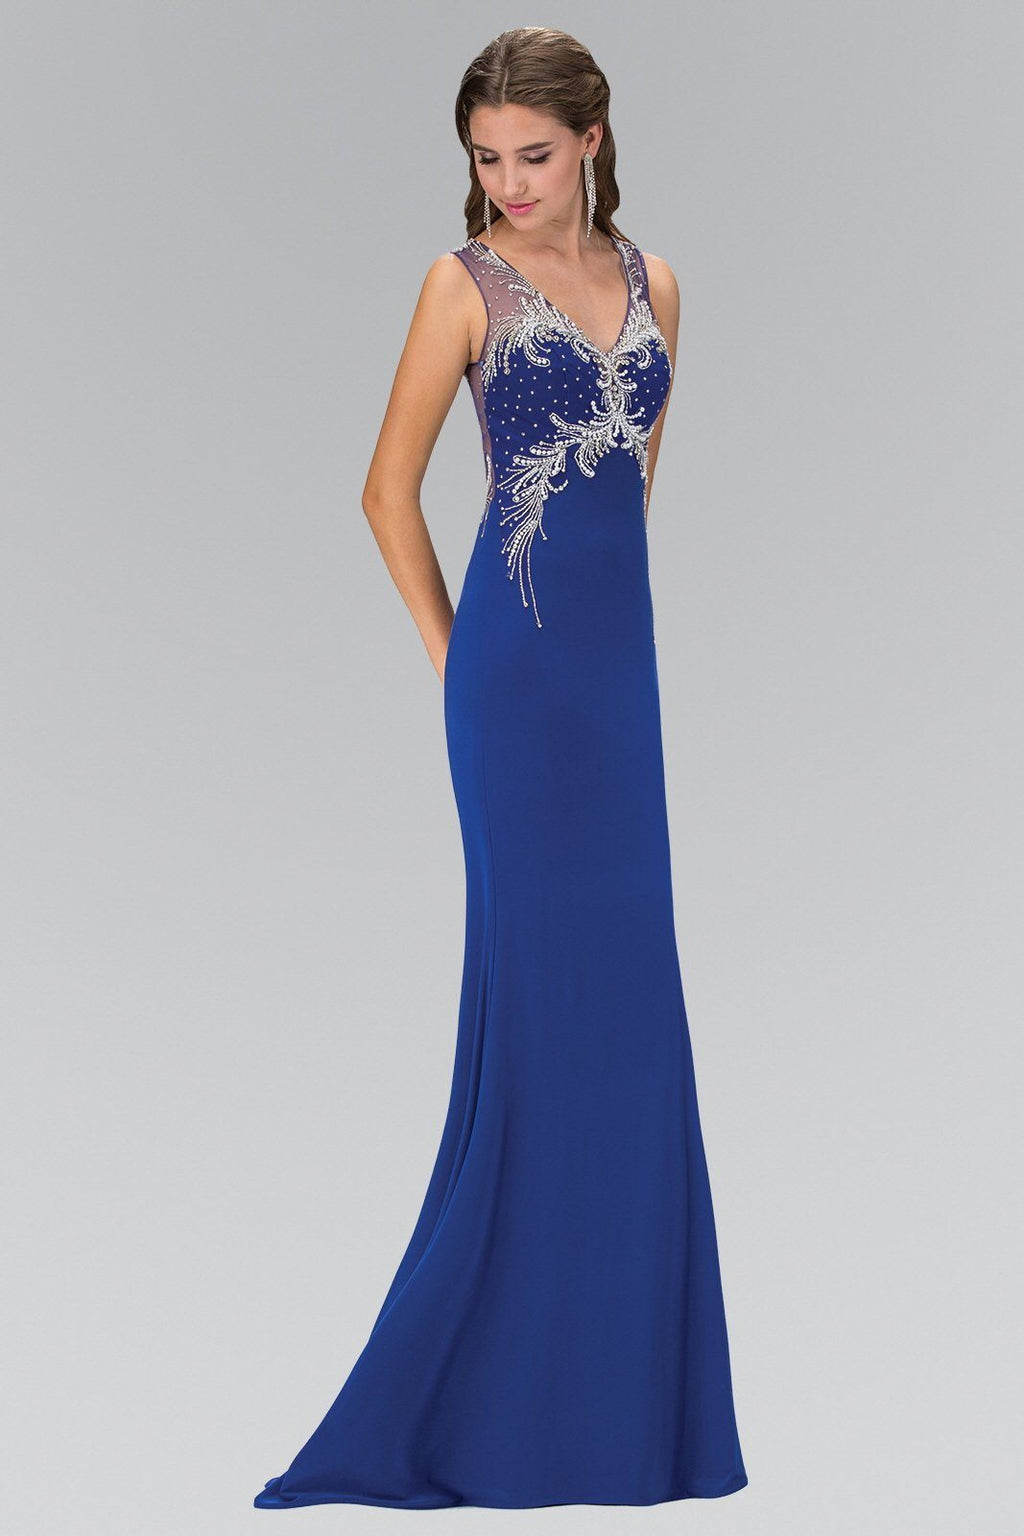 Royal blue sexy evening gown gls 1358-Simply Fab Dress